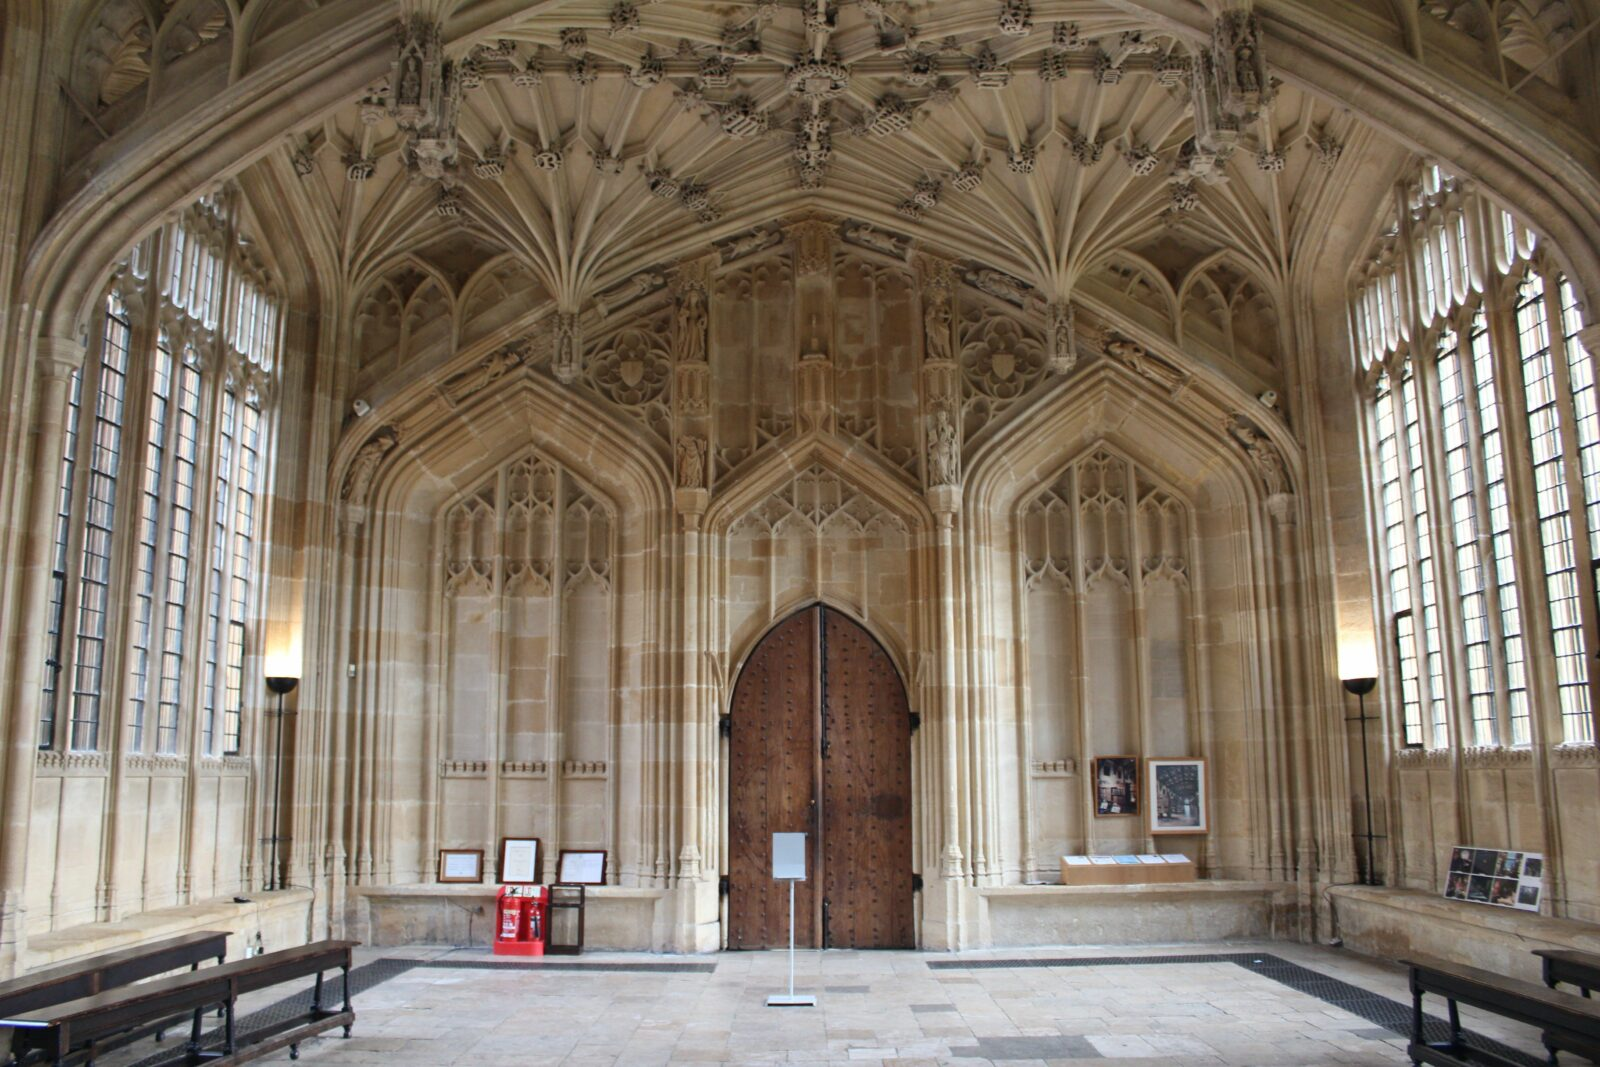 Harry Potter and Movie Locations Tour of Oxford